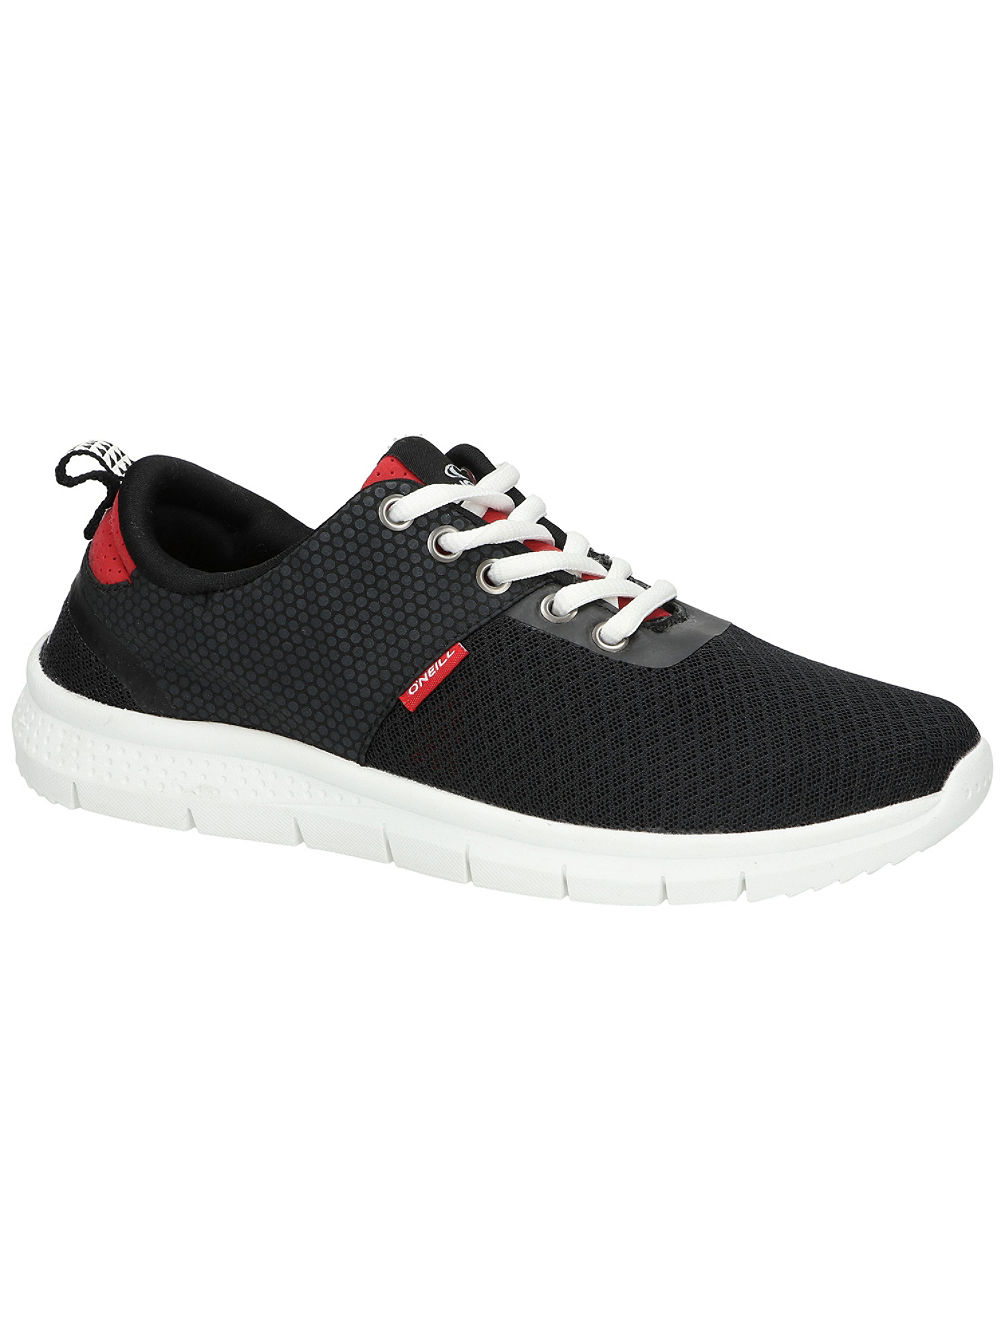 Commuter LT W Sneakers Women